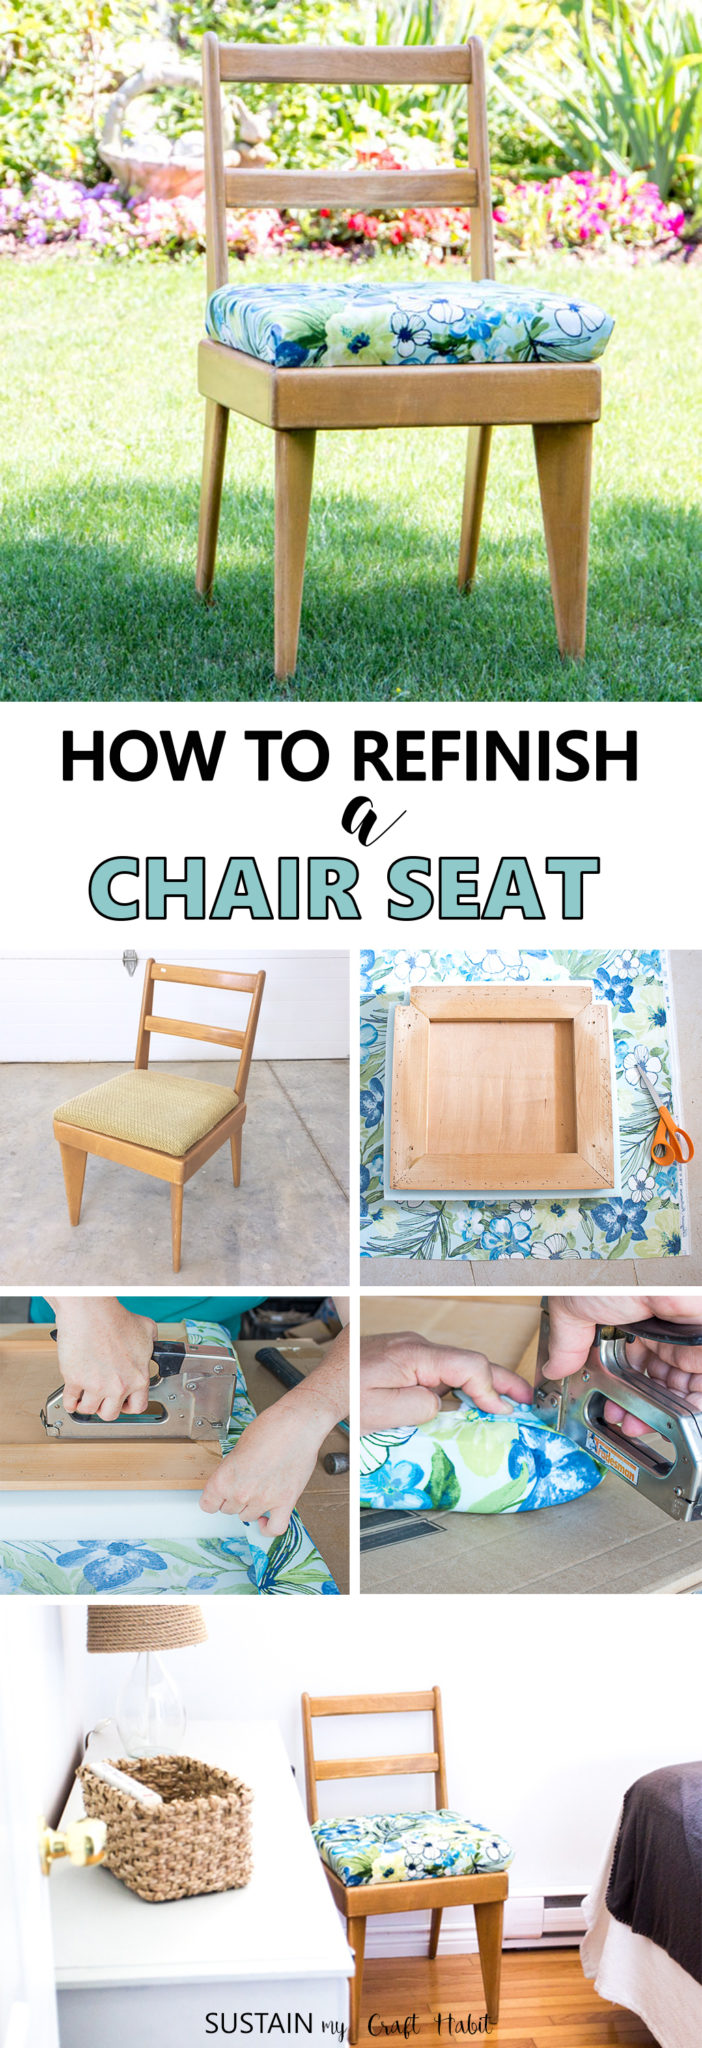 how to diy reupholster a chair kids game seat  sustain my craft habit